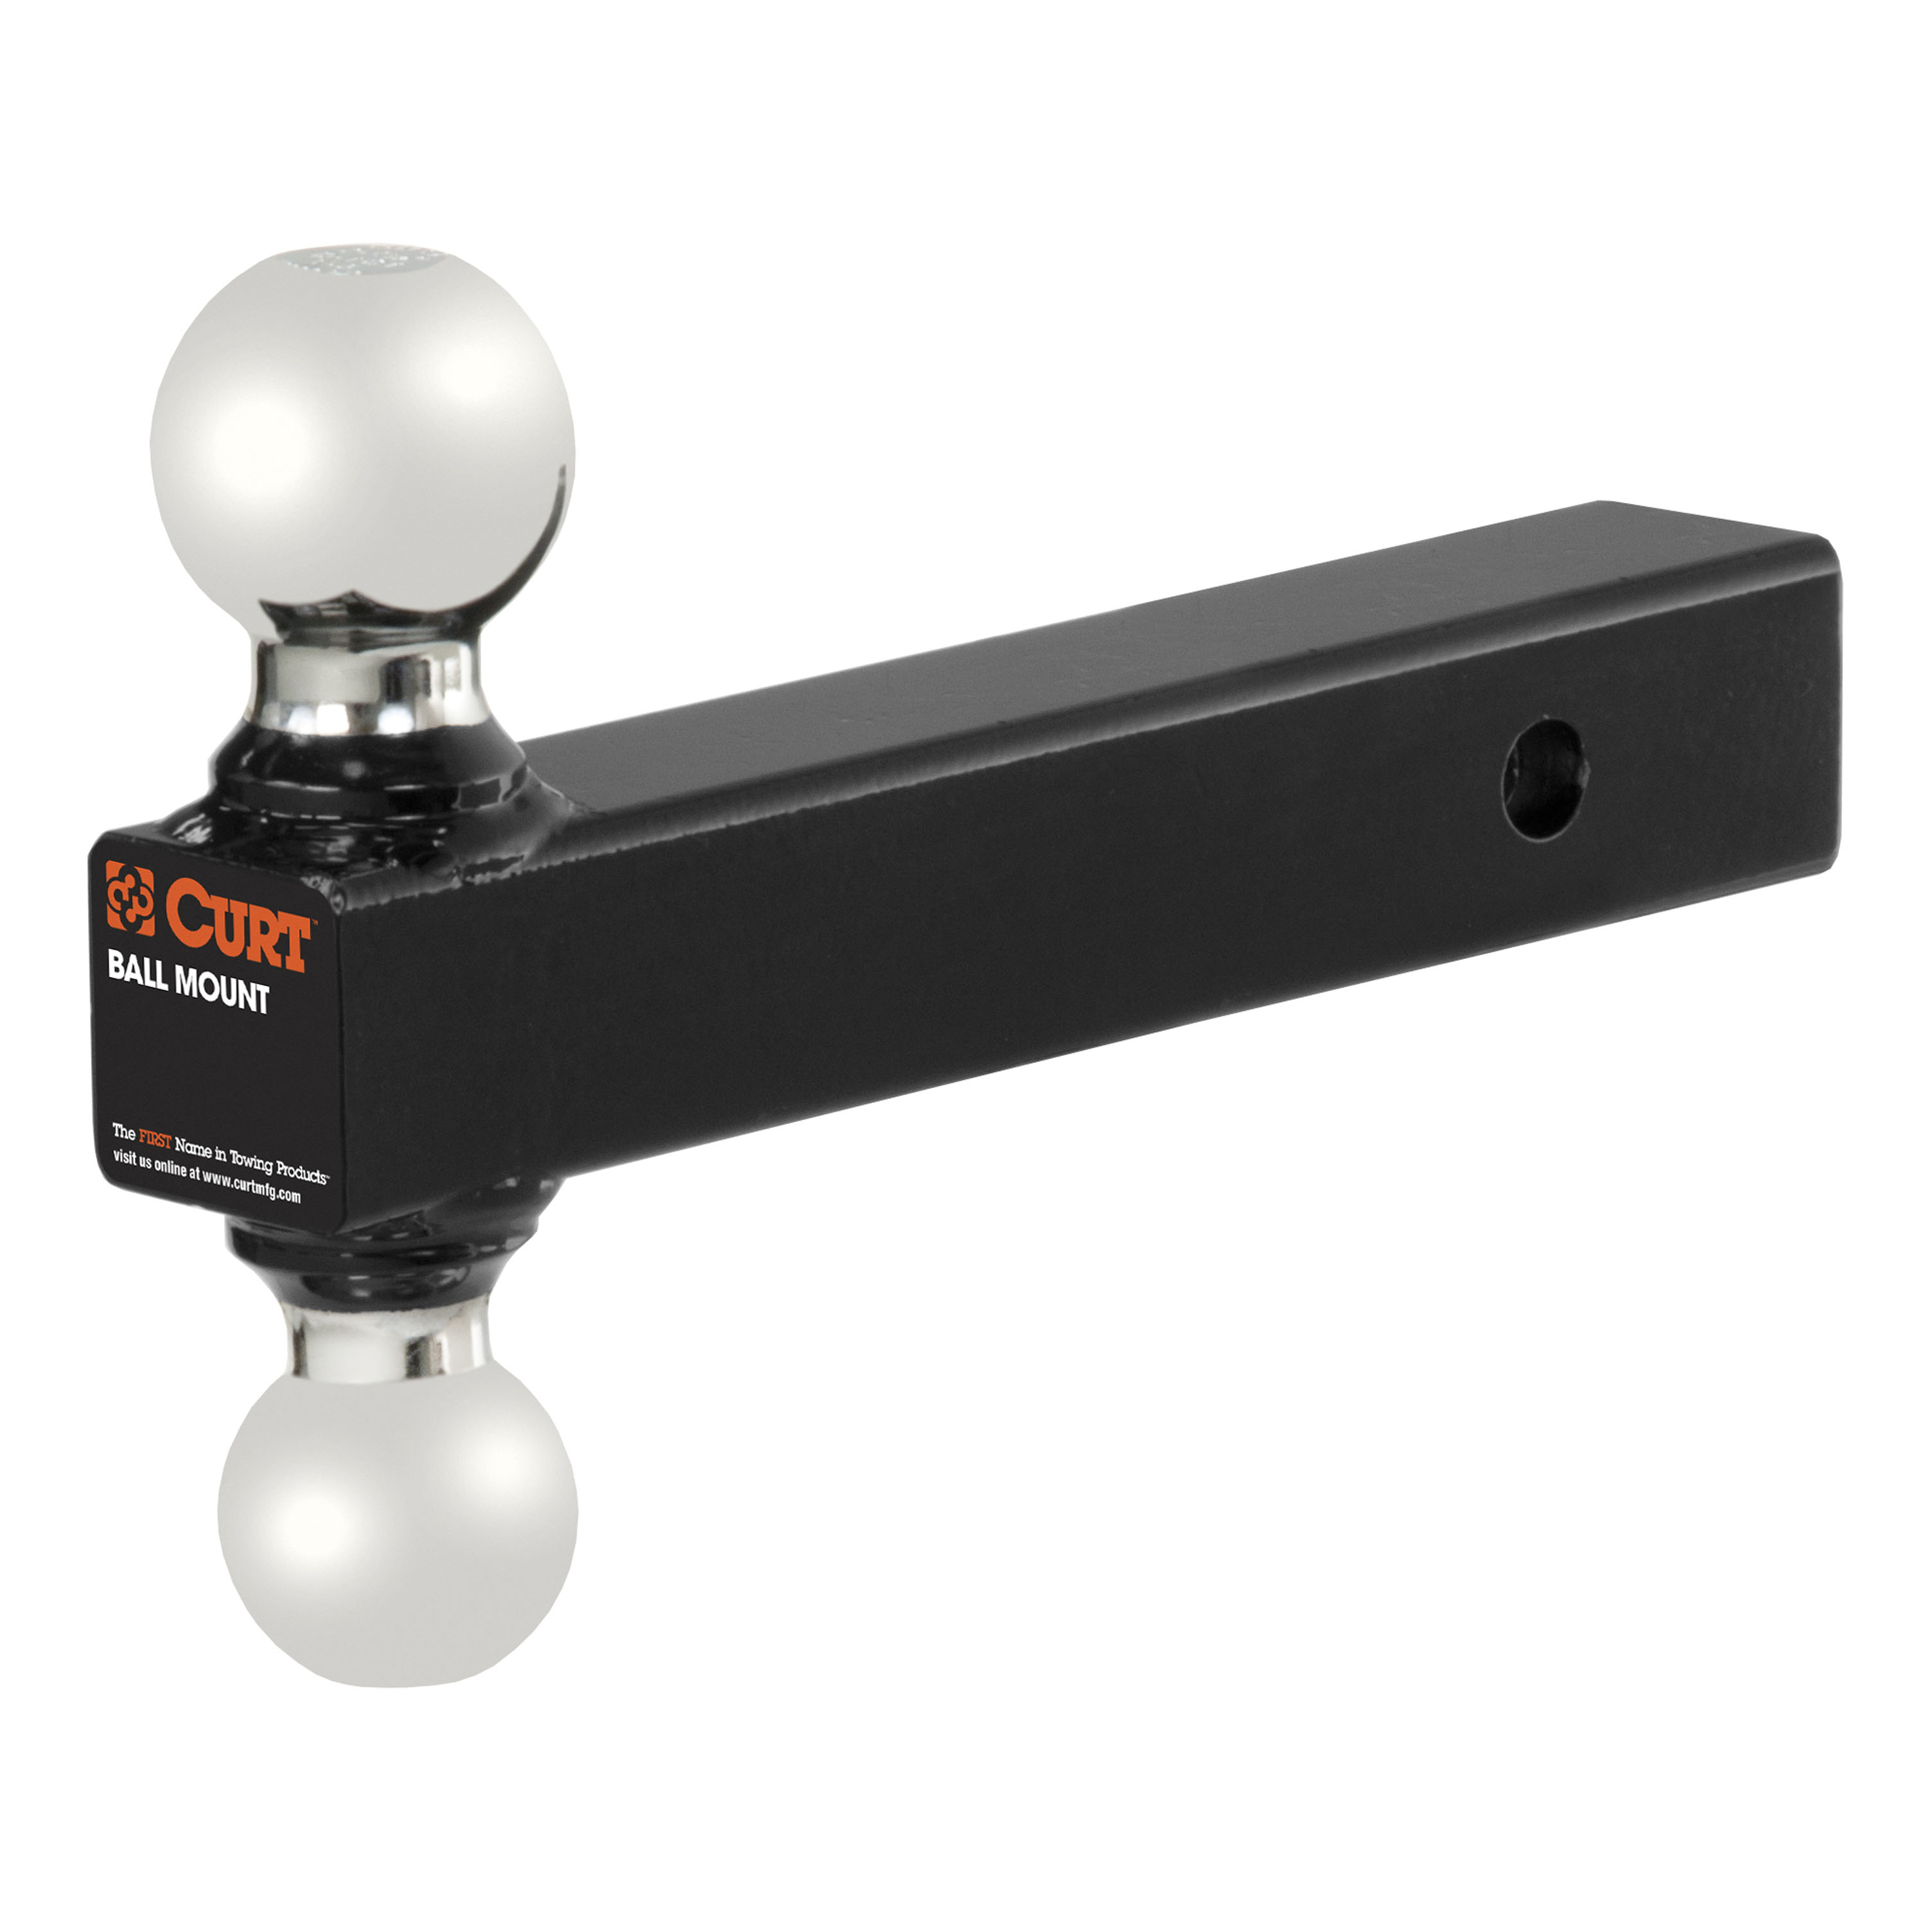 CURT Trailer Hitch, Wiring & Multi-Ball Ball Mount For